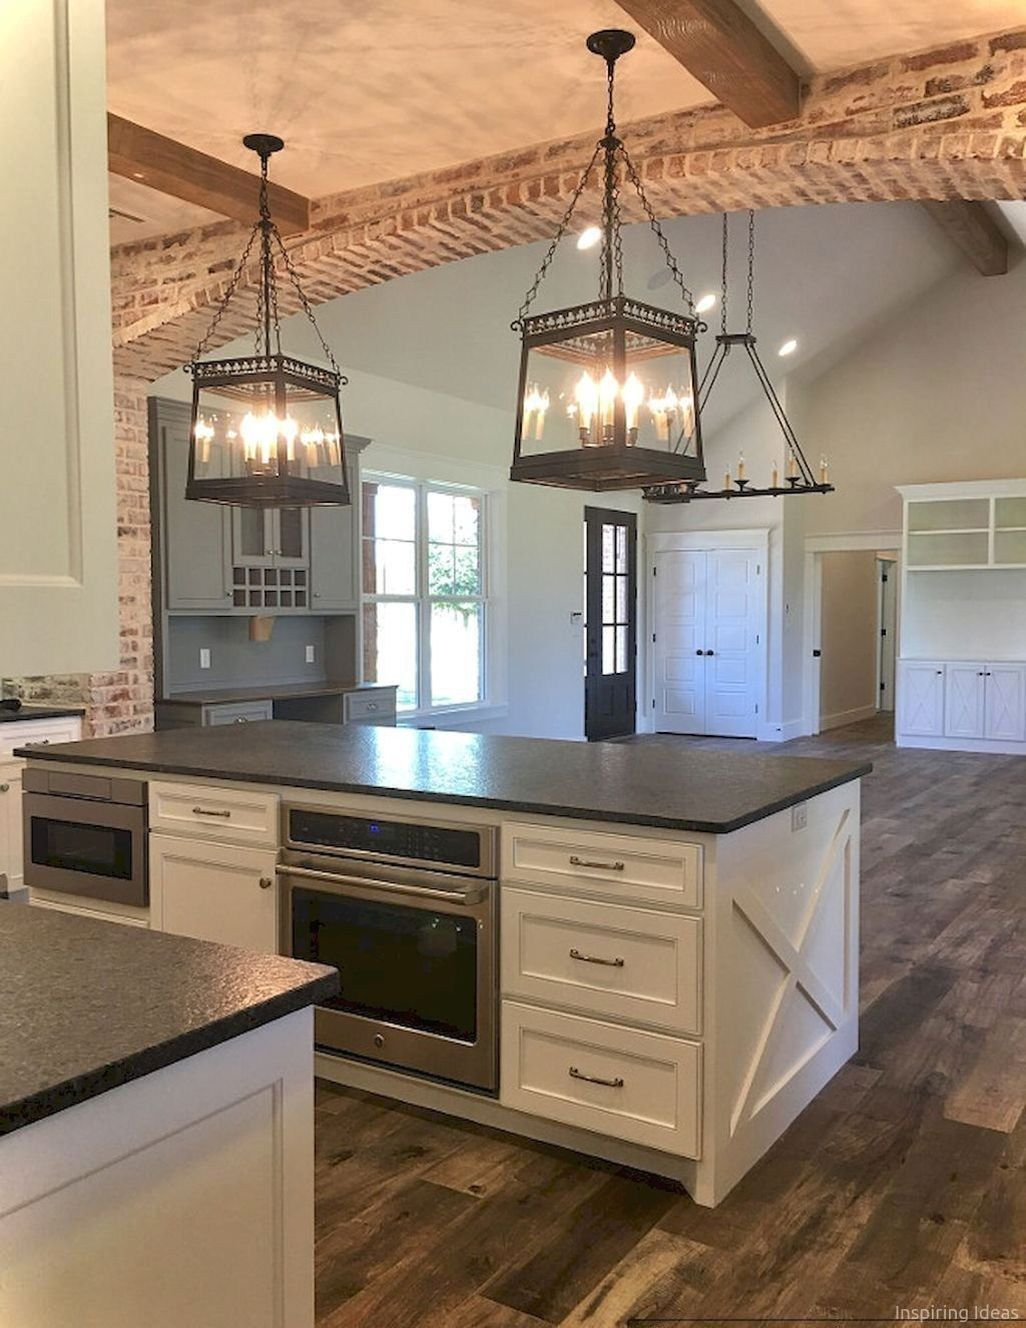 50 Awesome Farmhouse Kitchen Decoration Ideas - 50homedesign.com ...